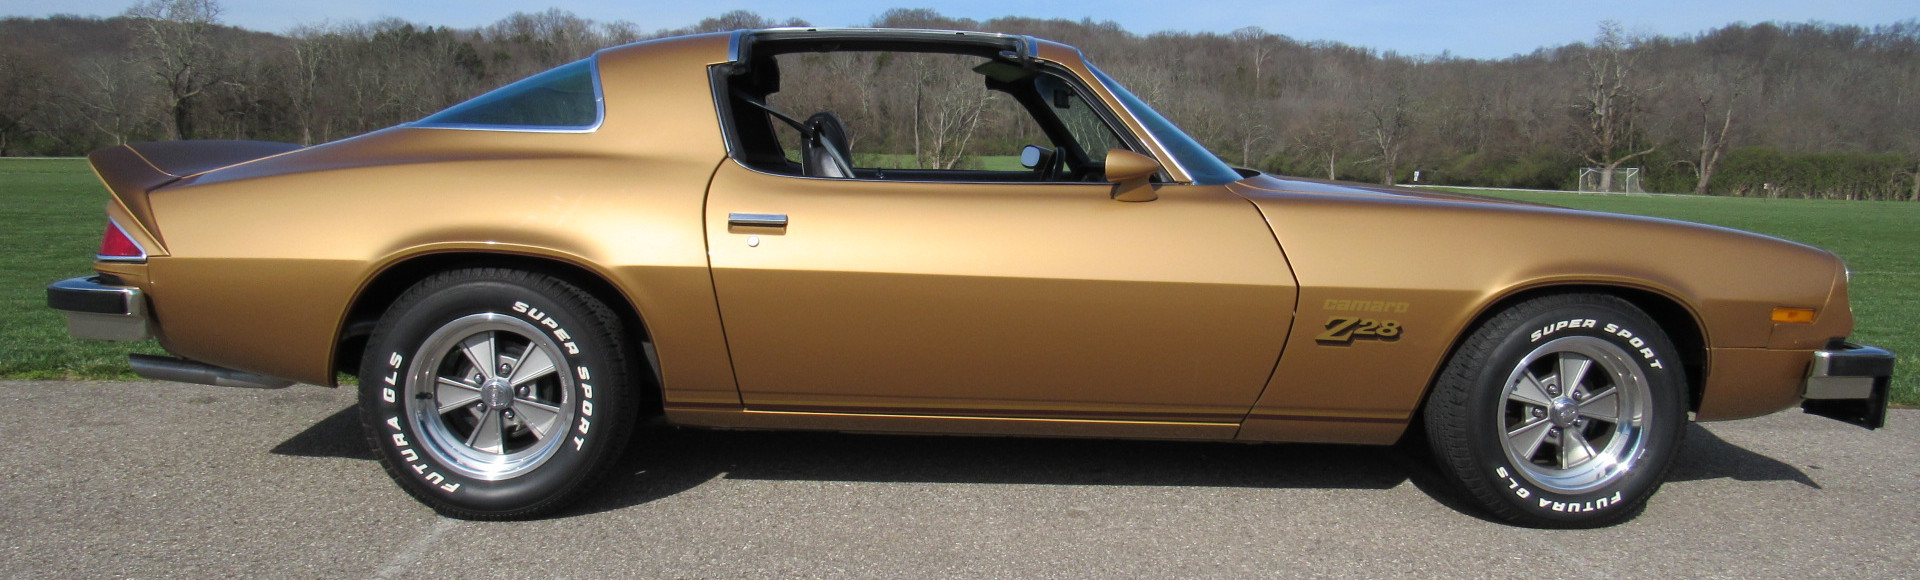 1977 Camaro 4speed T top 64K miles